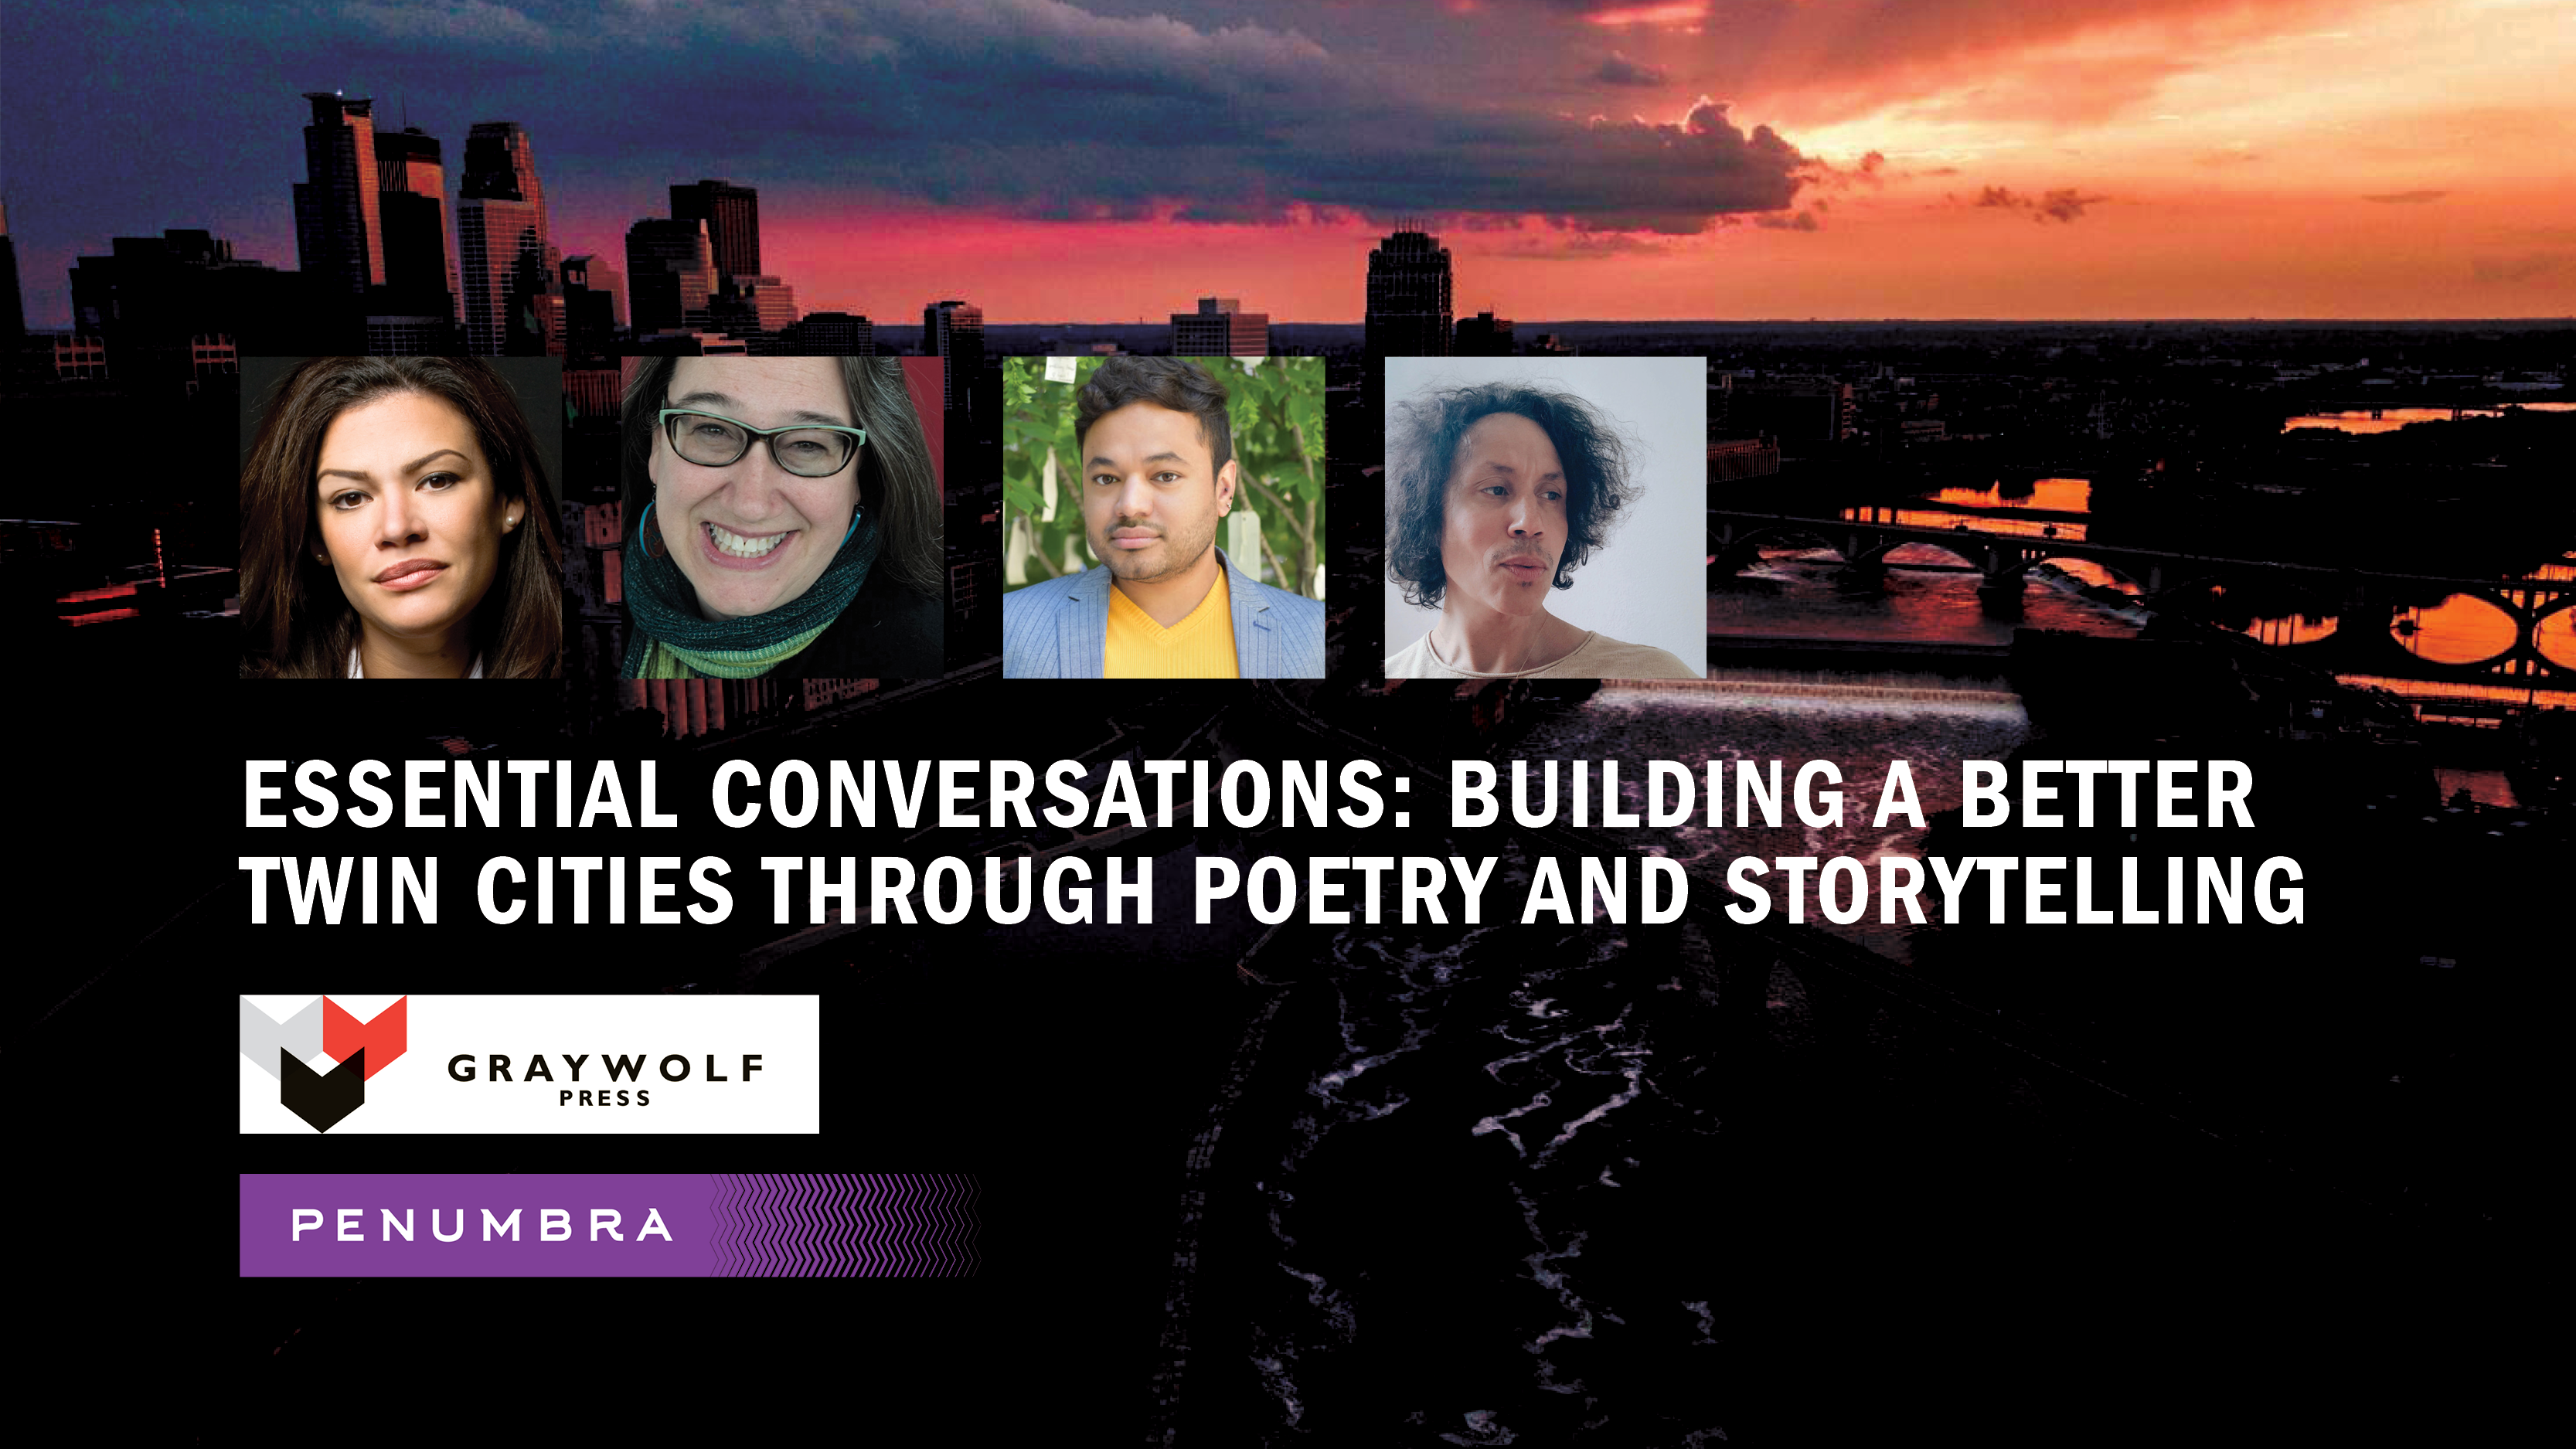 Essential Conversations: Building a Better Twin Cities through Poetry and Storytelling